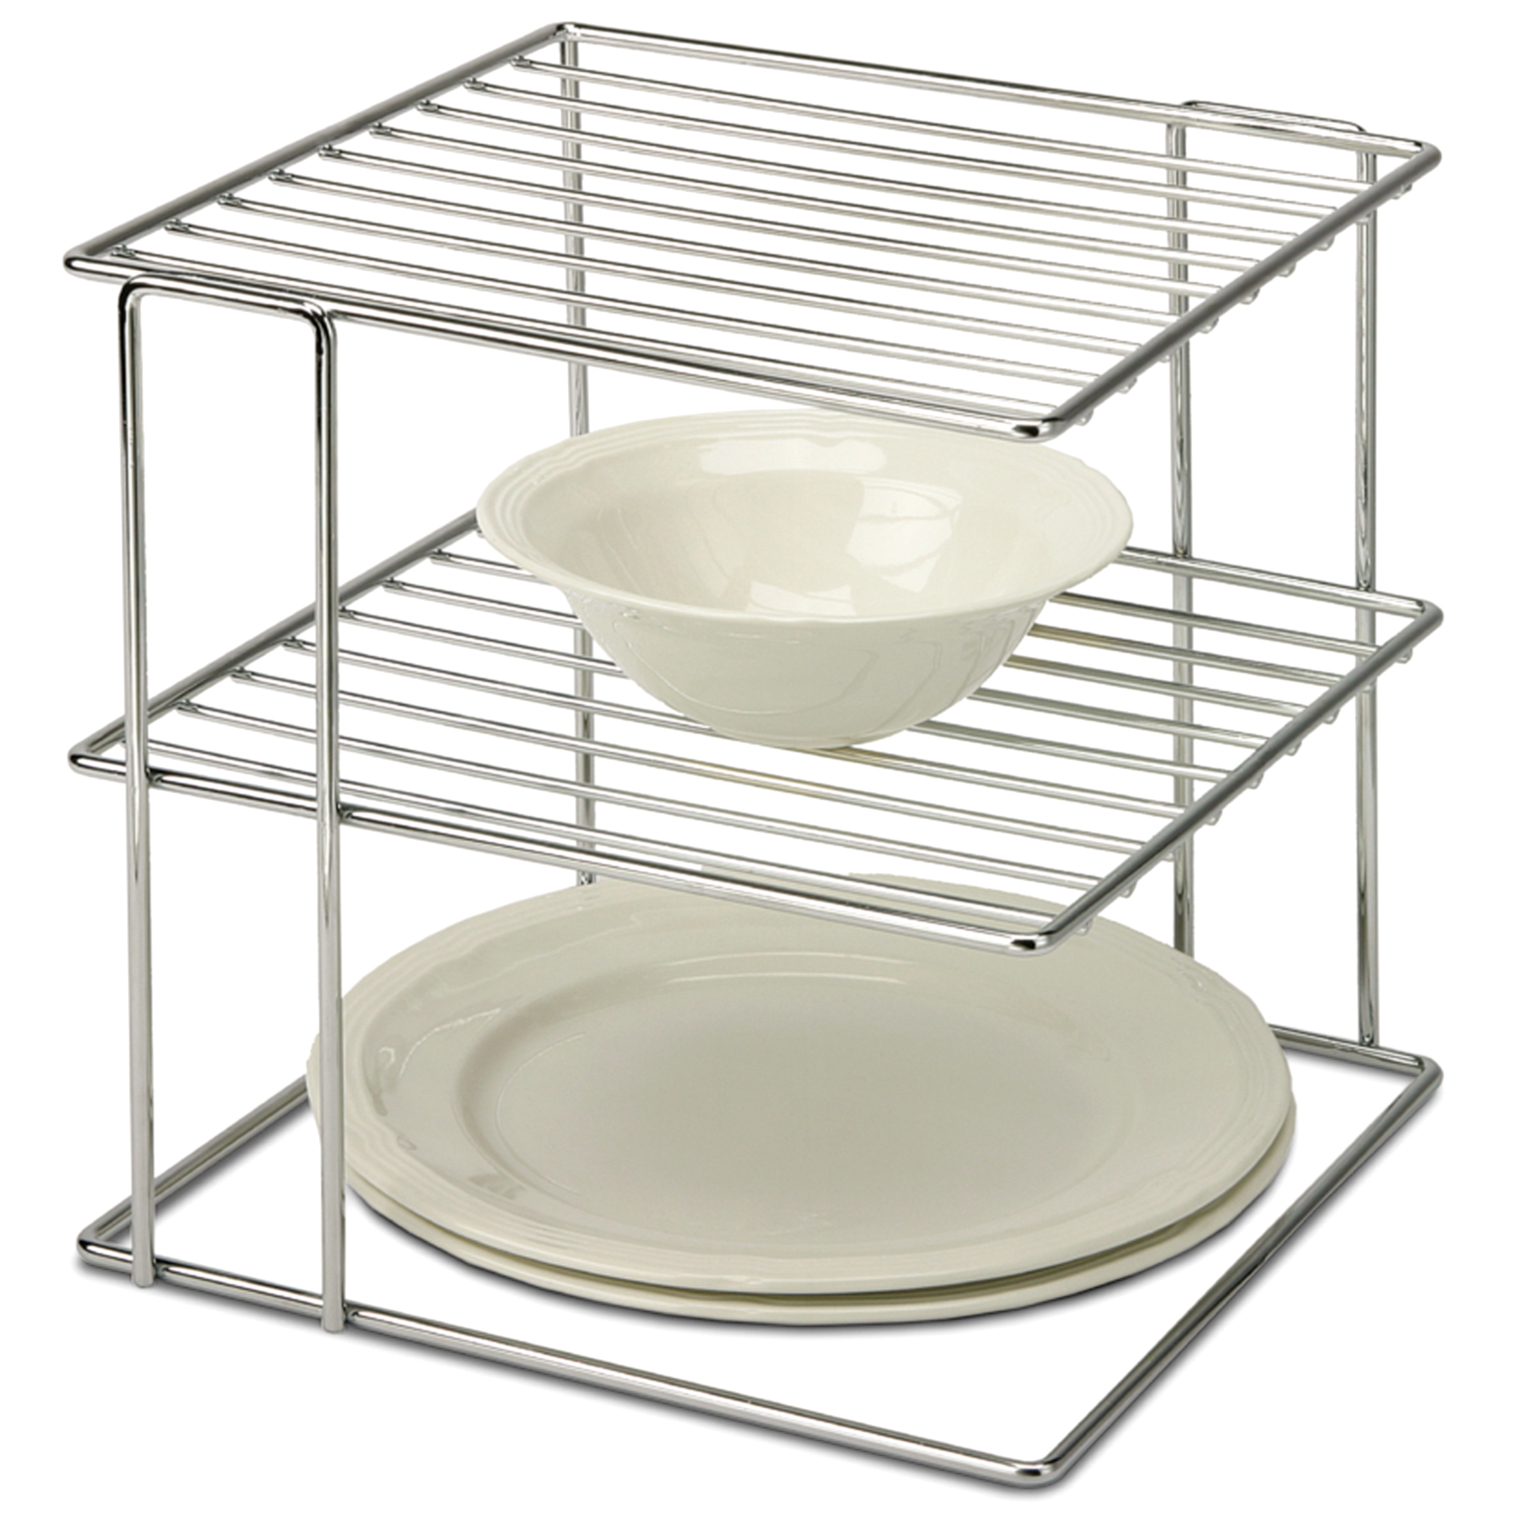 Delicieux Organize It All 1824 2 Tier Chrome Wire Cabinet Corner Shelf